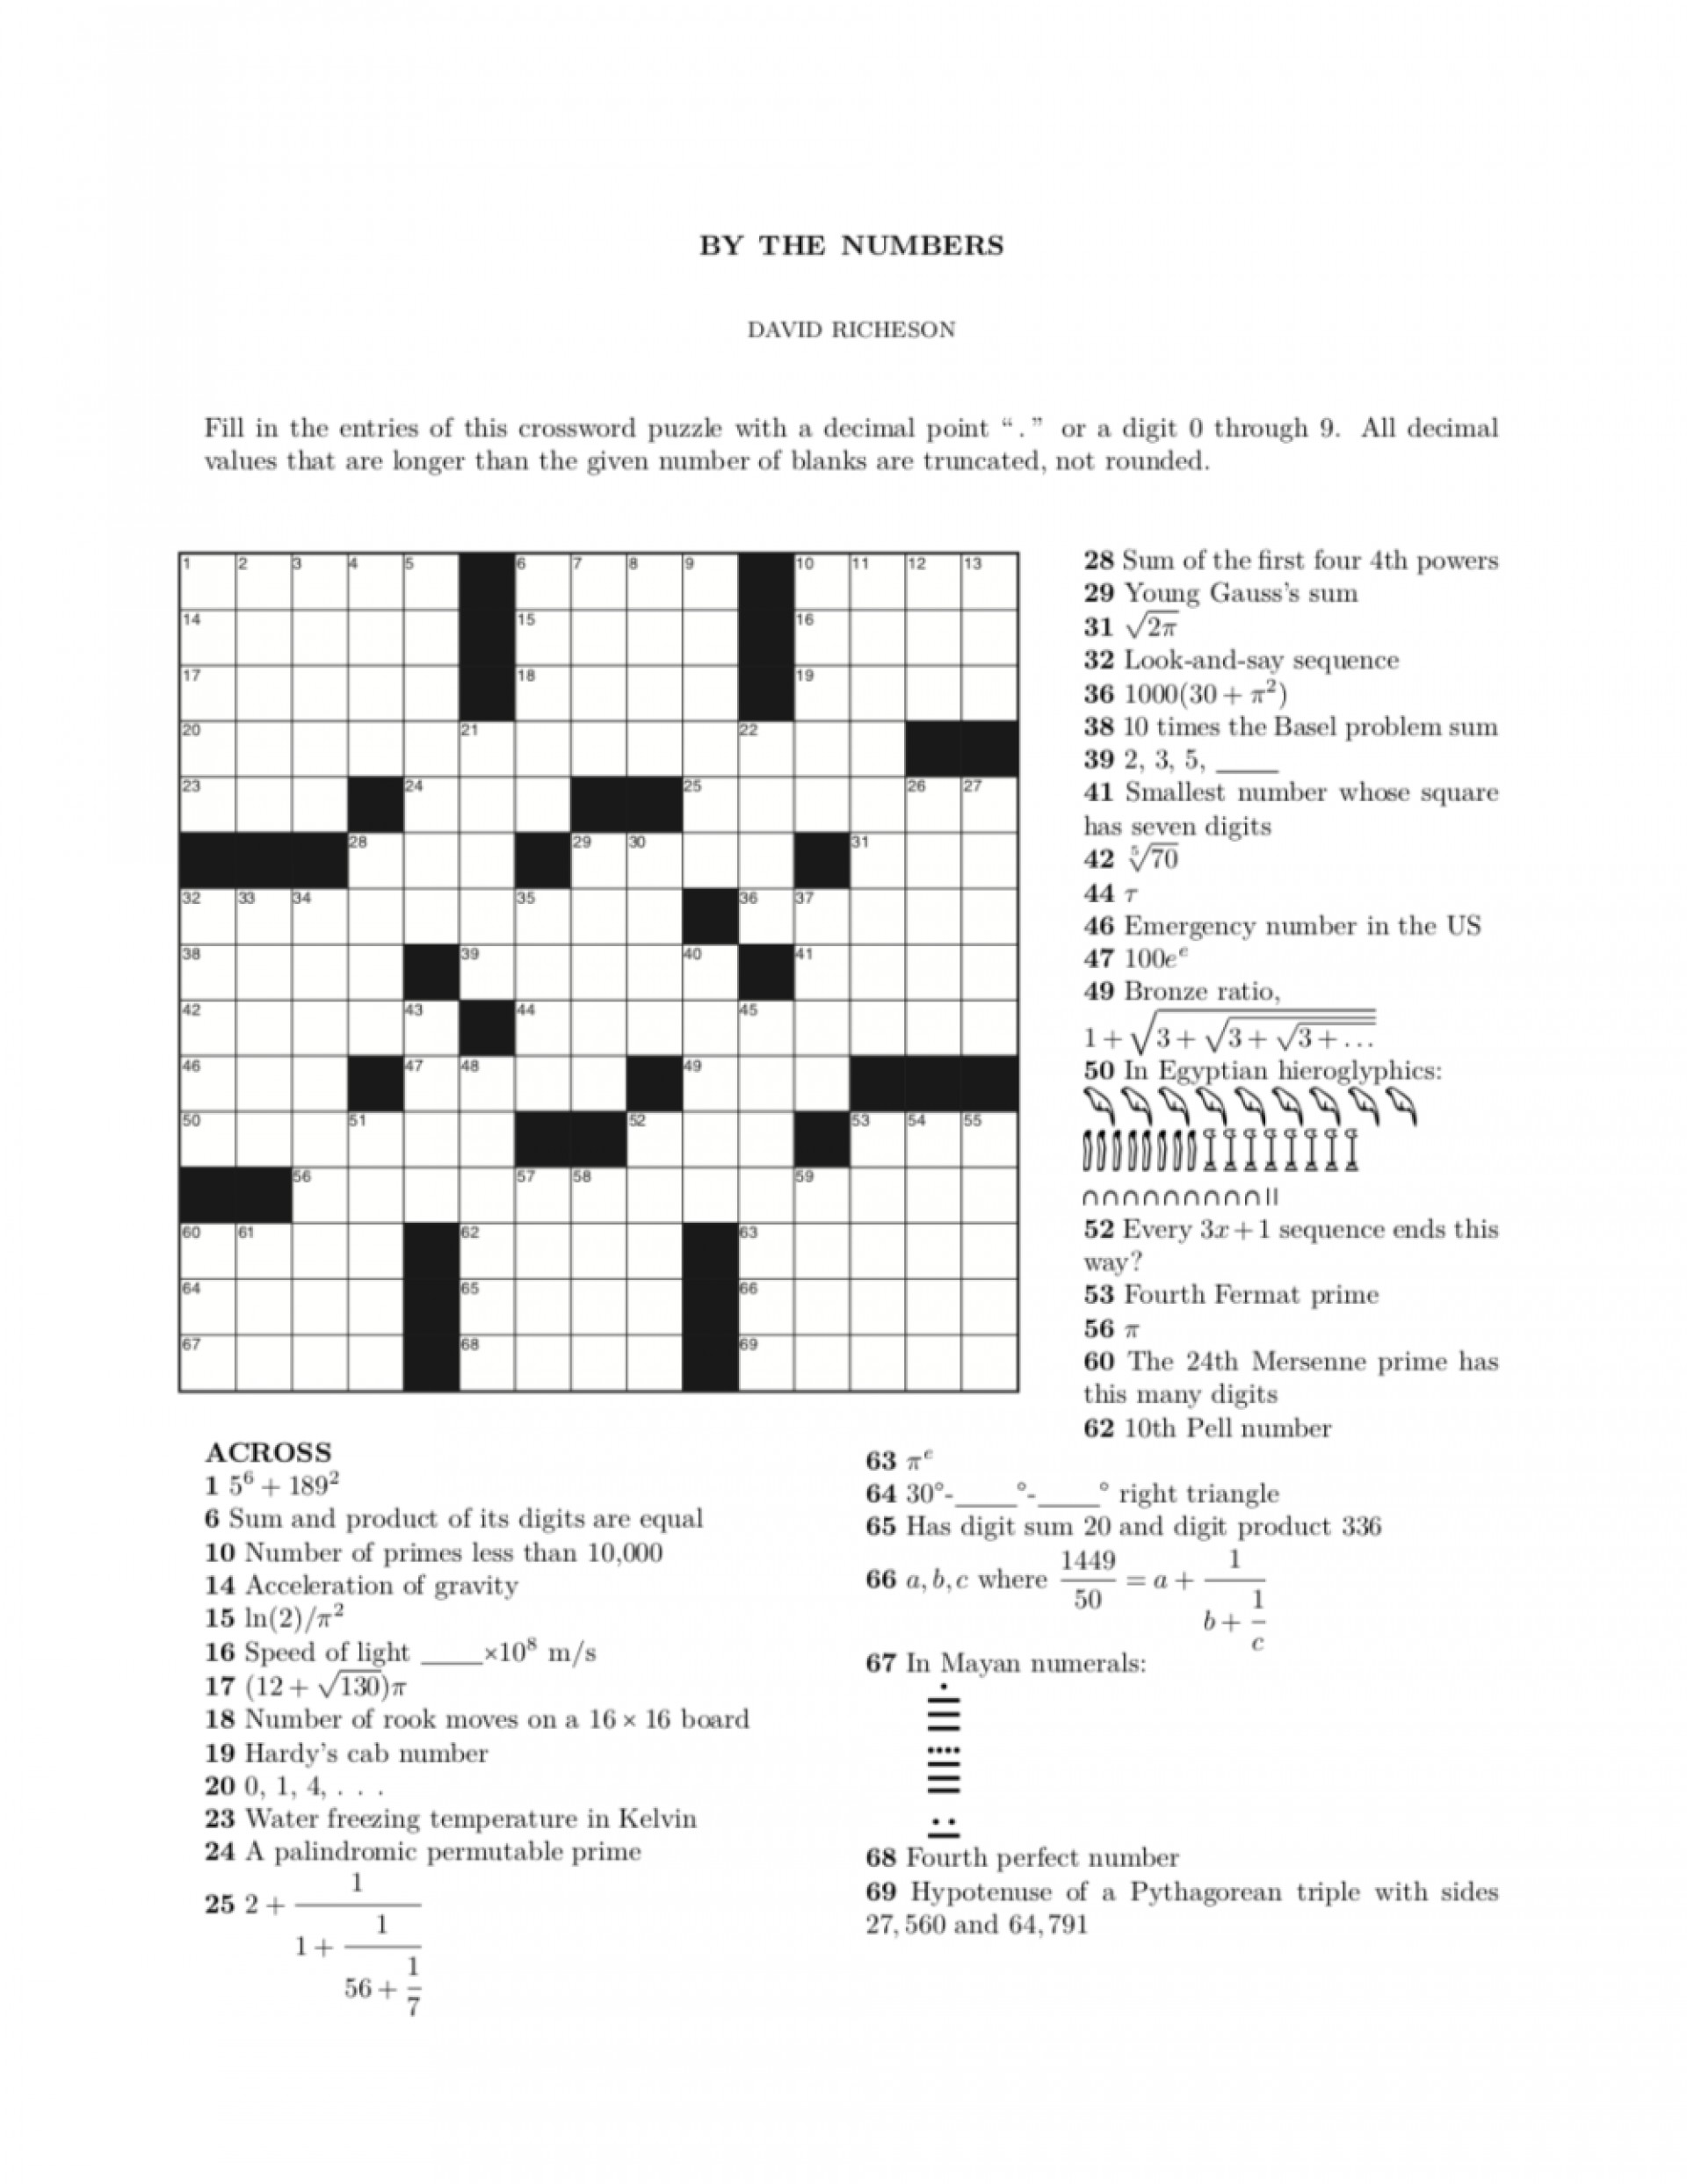 014 Research Paper Screen Shot At Pmw1000 Academic Papers Awful Crossword Clue 1920